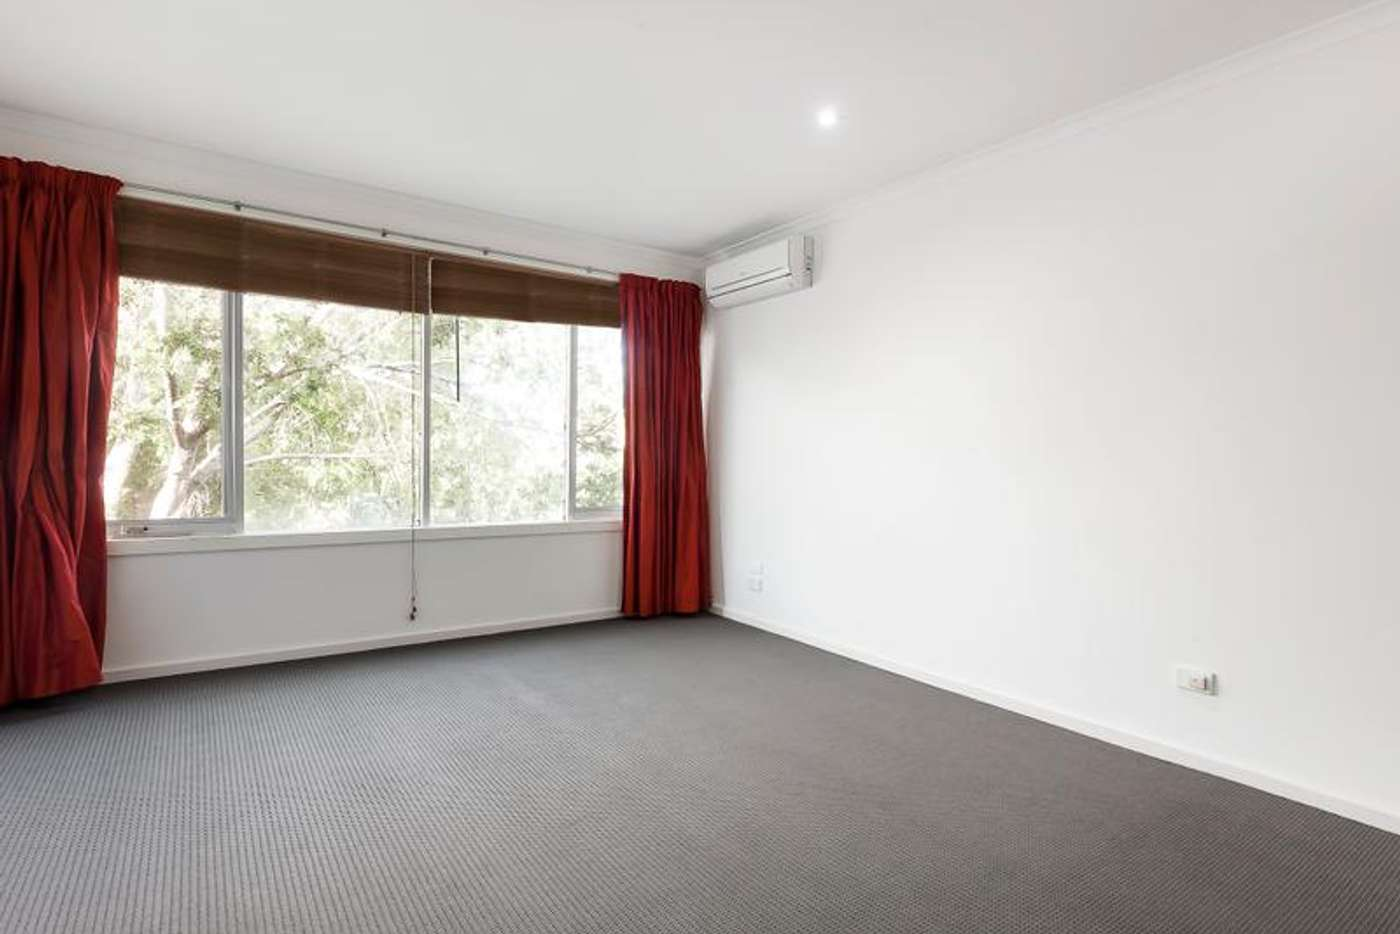 Sixth view of Homely house listing, 17 Vickery Street, Malvern East VIC 3145